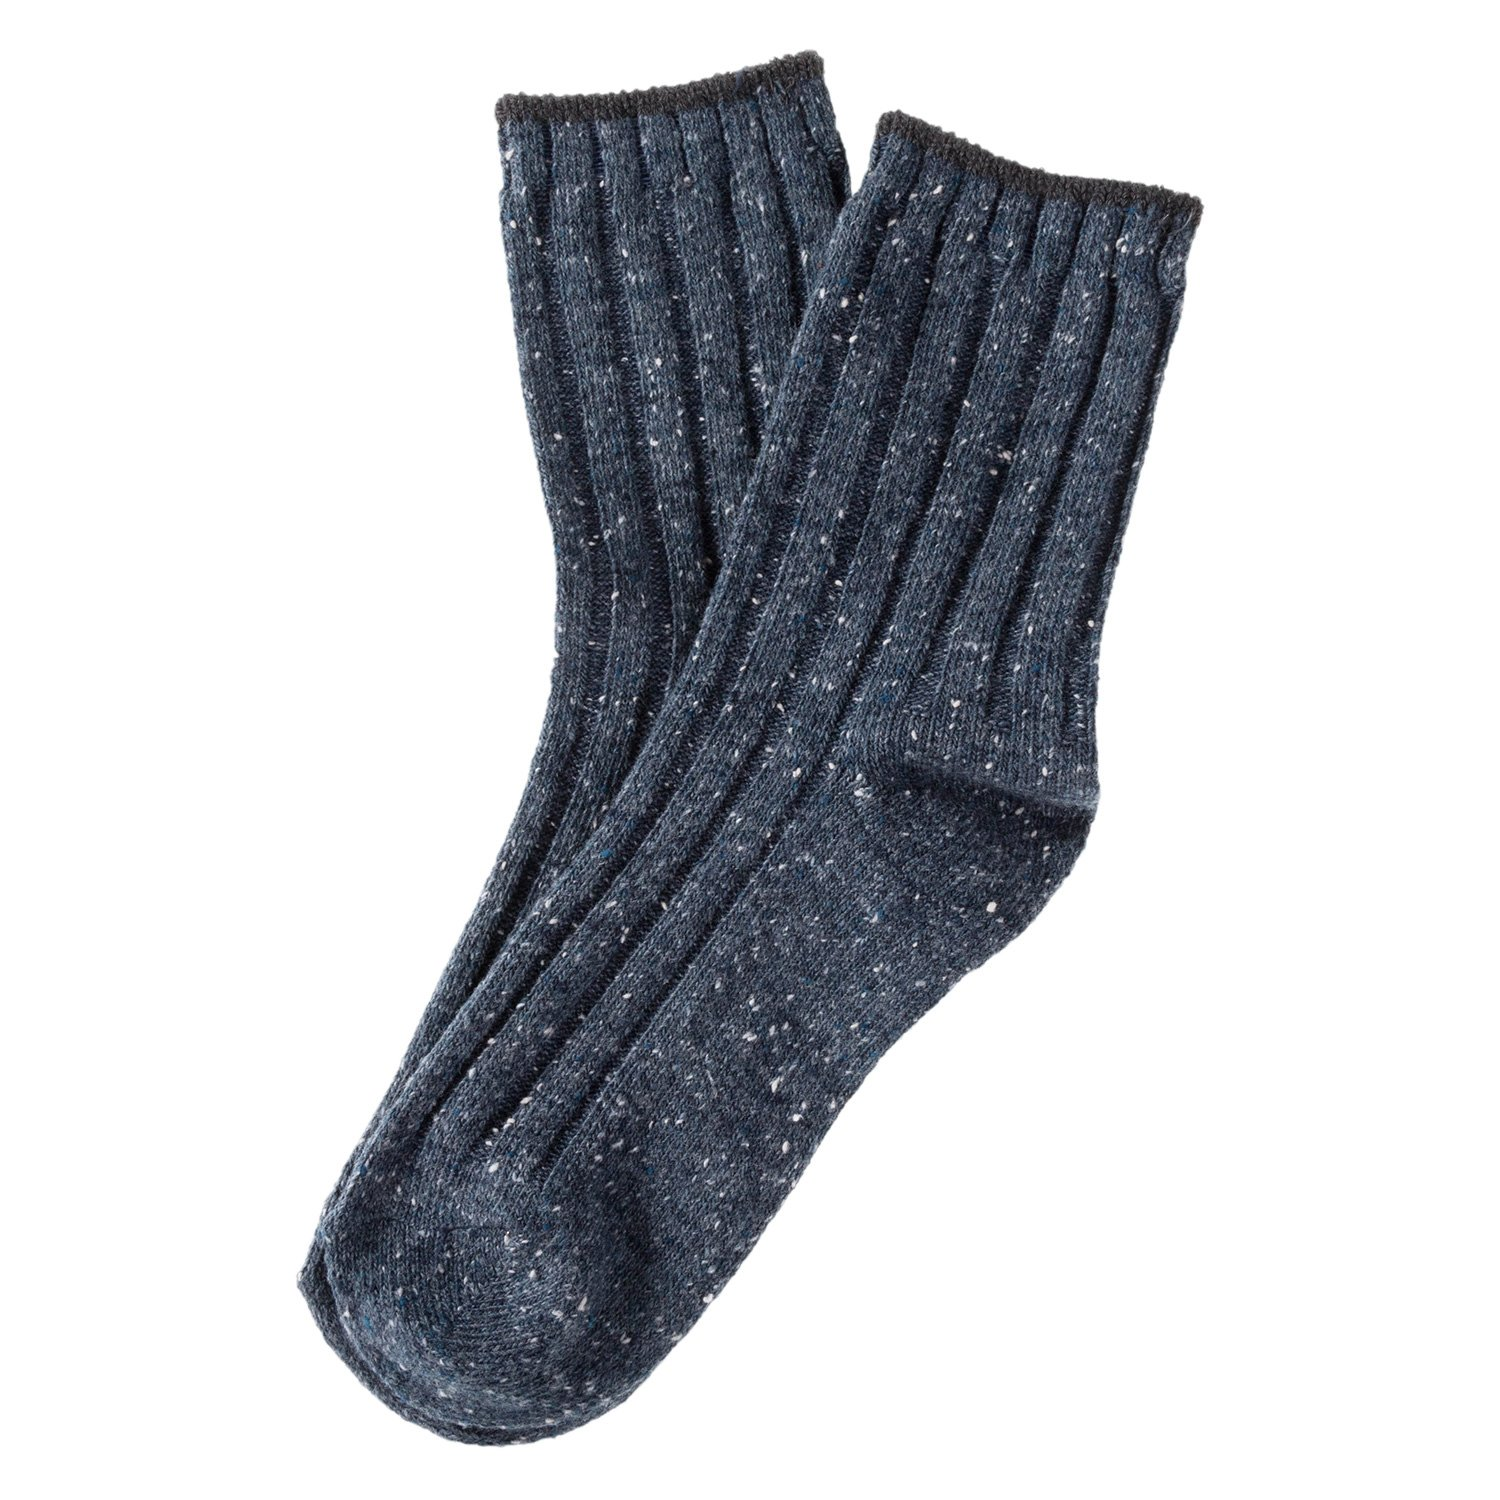 Lian LifeStyle Big Girl's 4 Pairs Cotton Blend Crew Socks HR1762 Casual Size L/XL 4 Colors Style 2(Navy, Dark Grey, Green, Red)